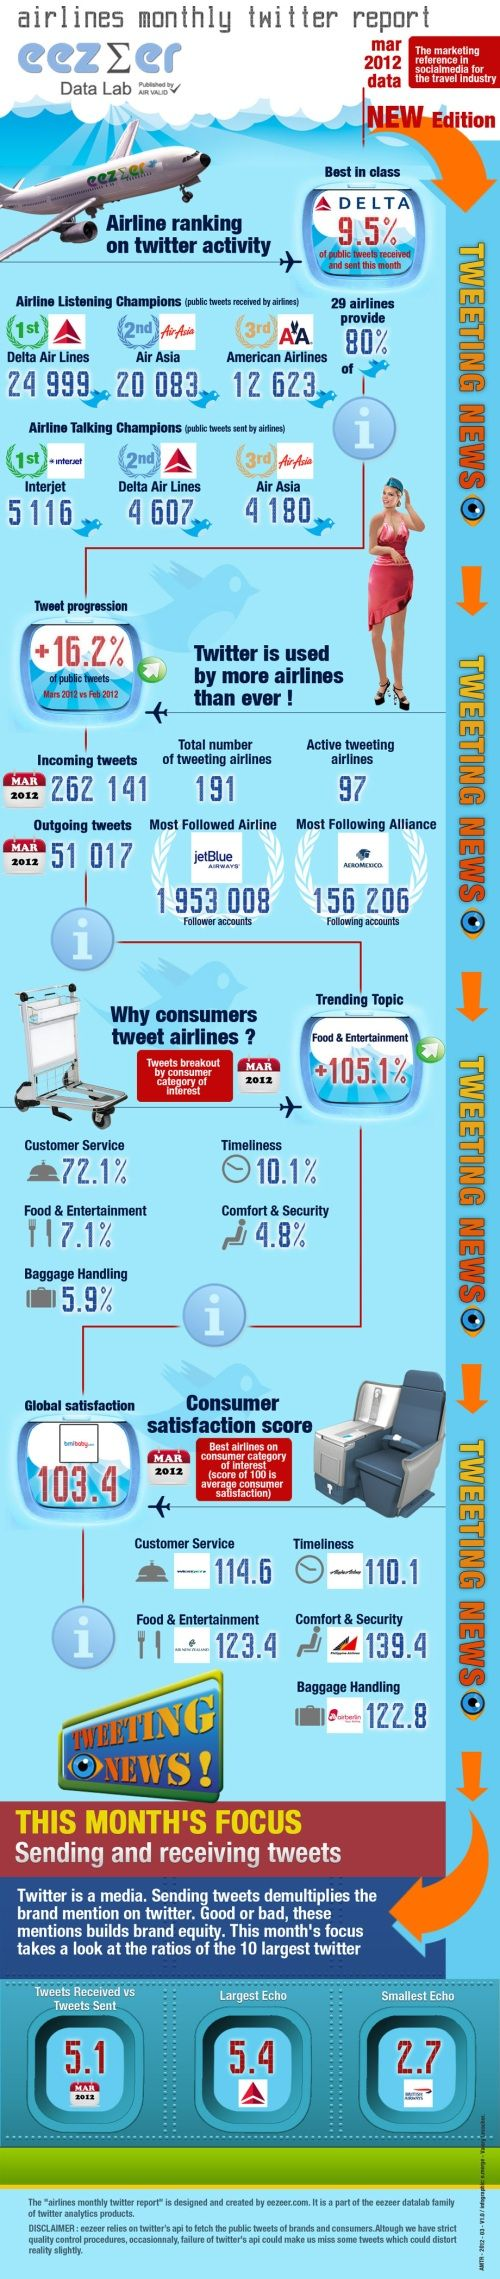 How Airlines Used Twitter In March #INFOGRAPHIC